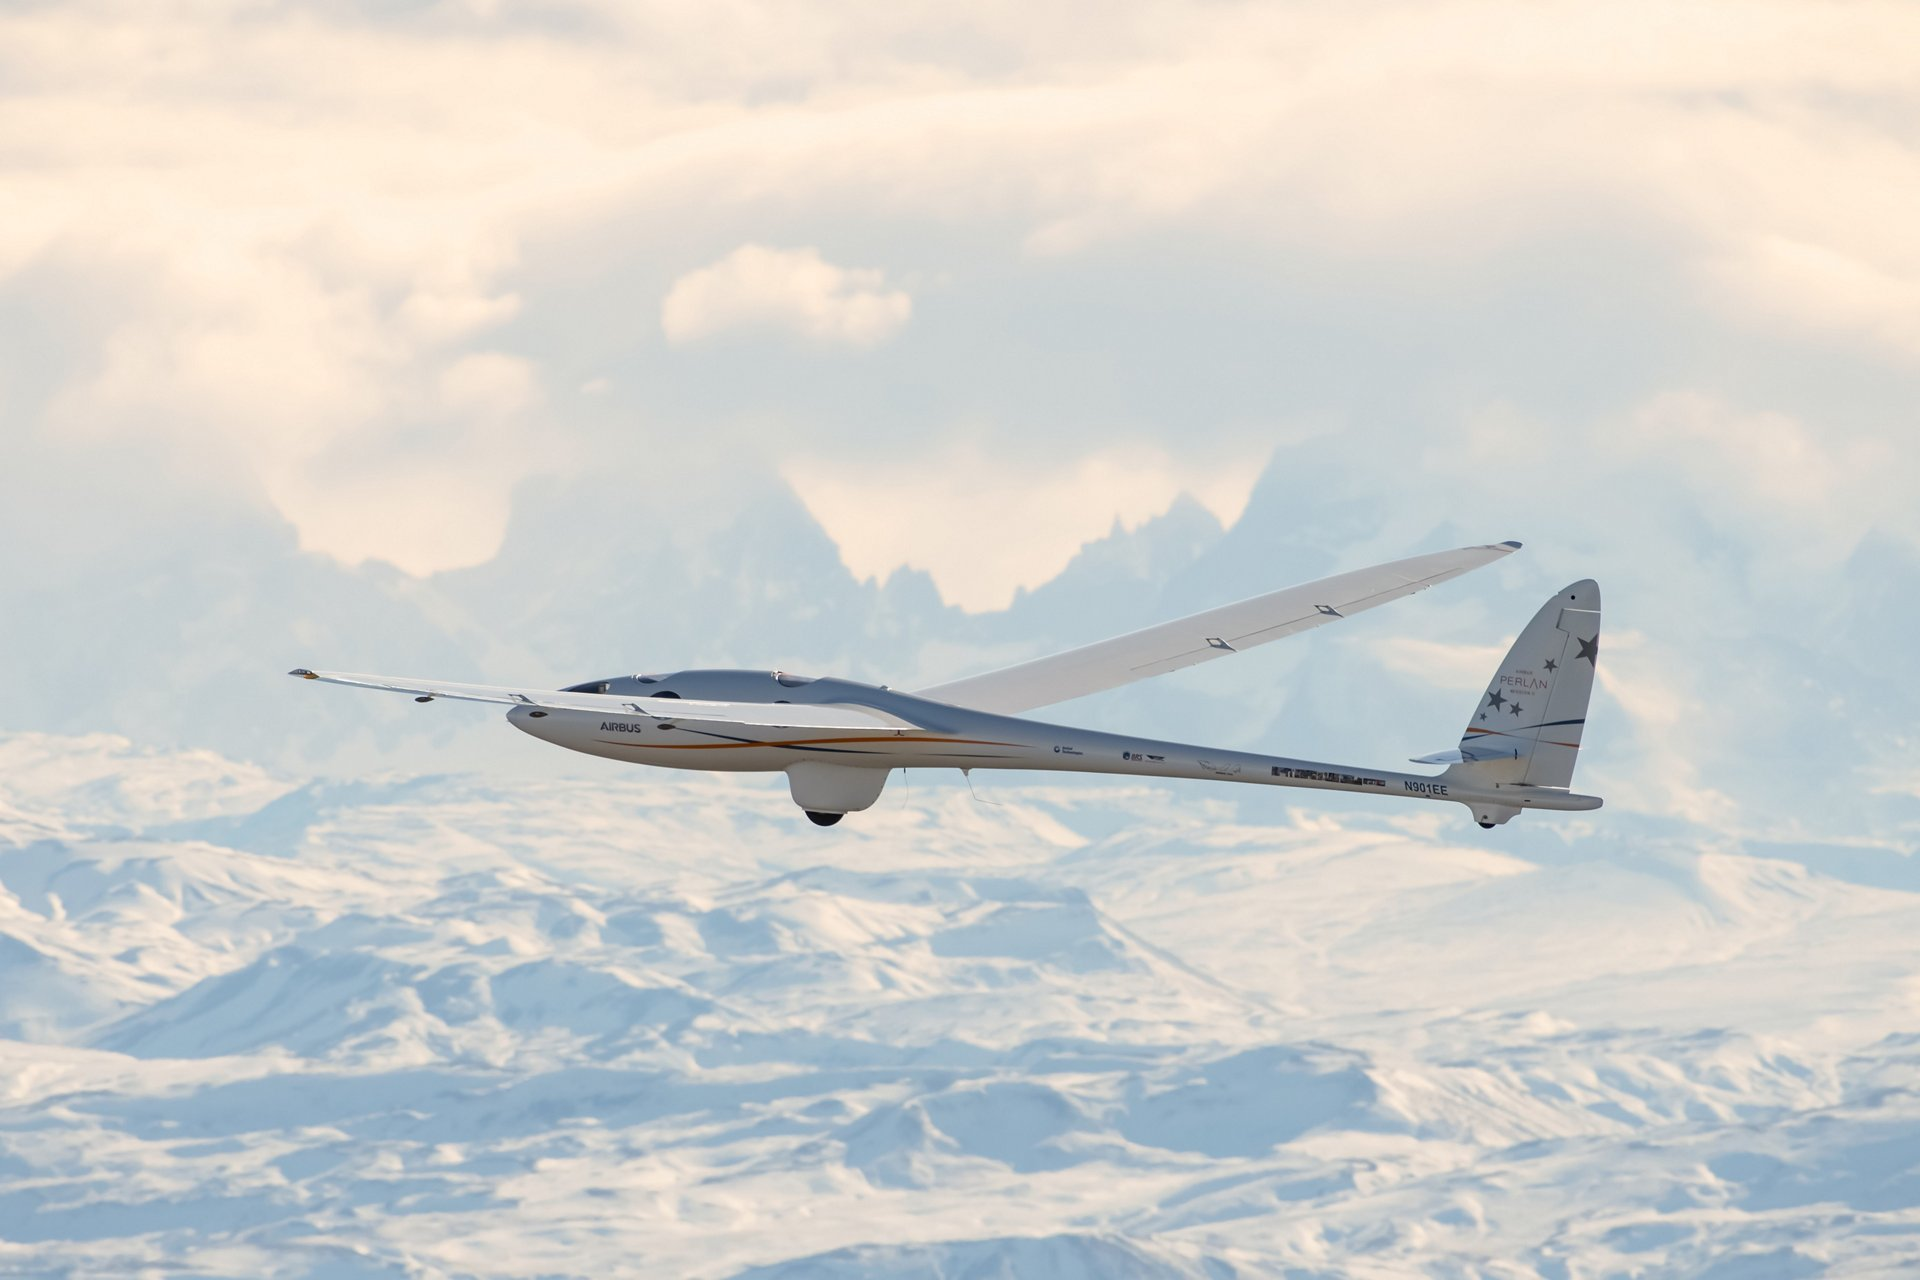 Airbus Perlan Mission II soars to over 62,000 feet, setting second altitude world record and crossing Armstrong Line